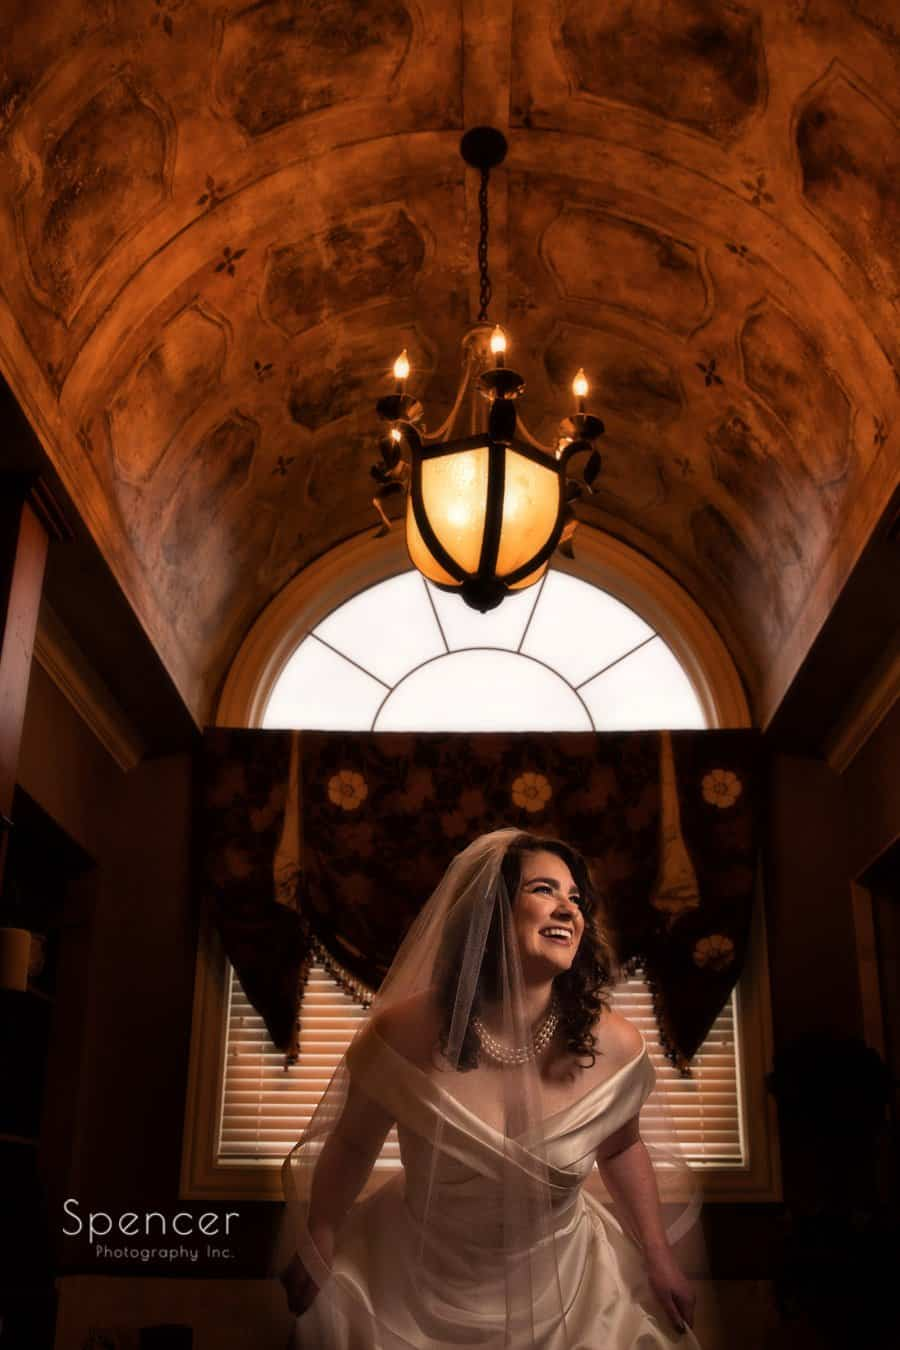 creative picture of bride on her wedding day